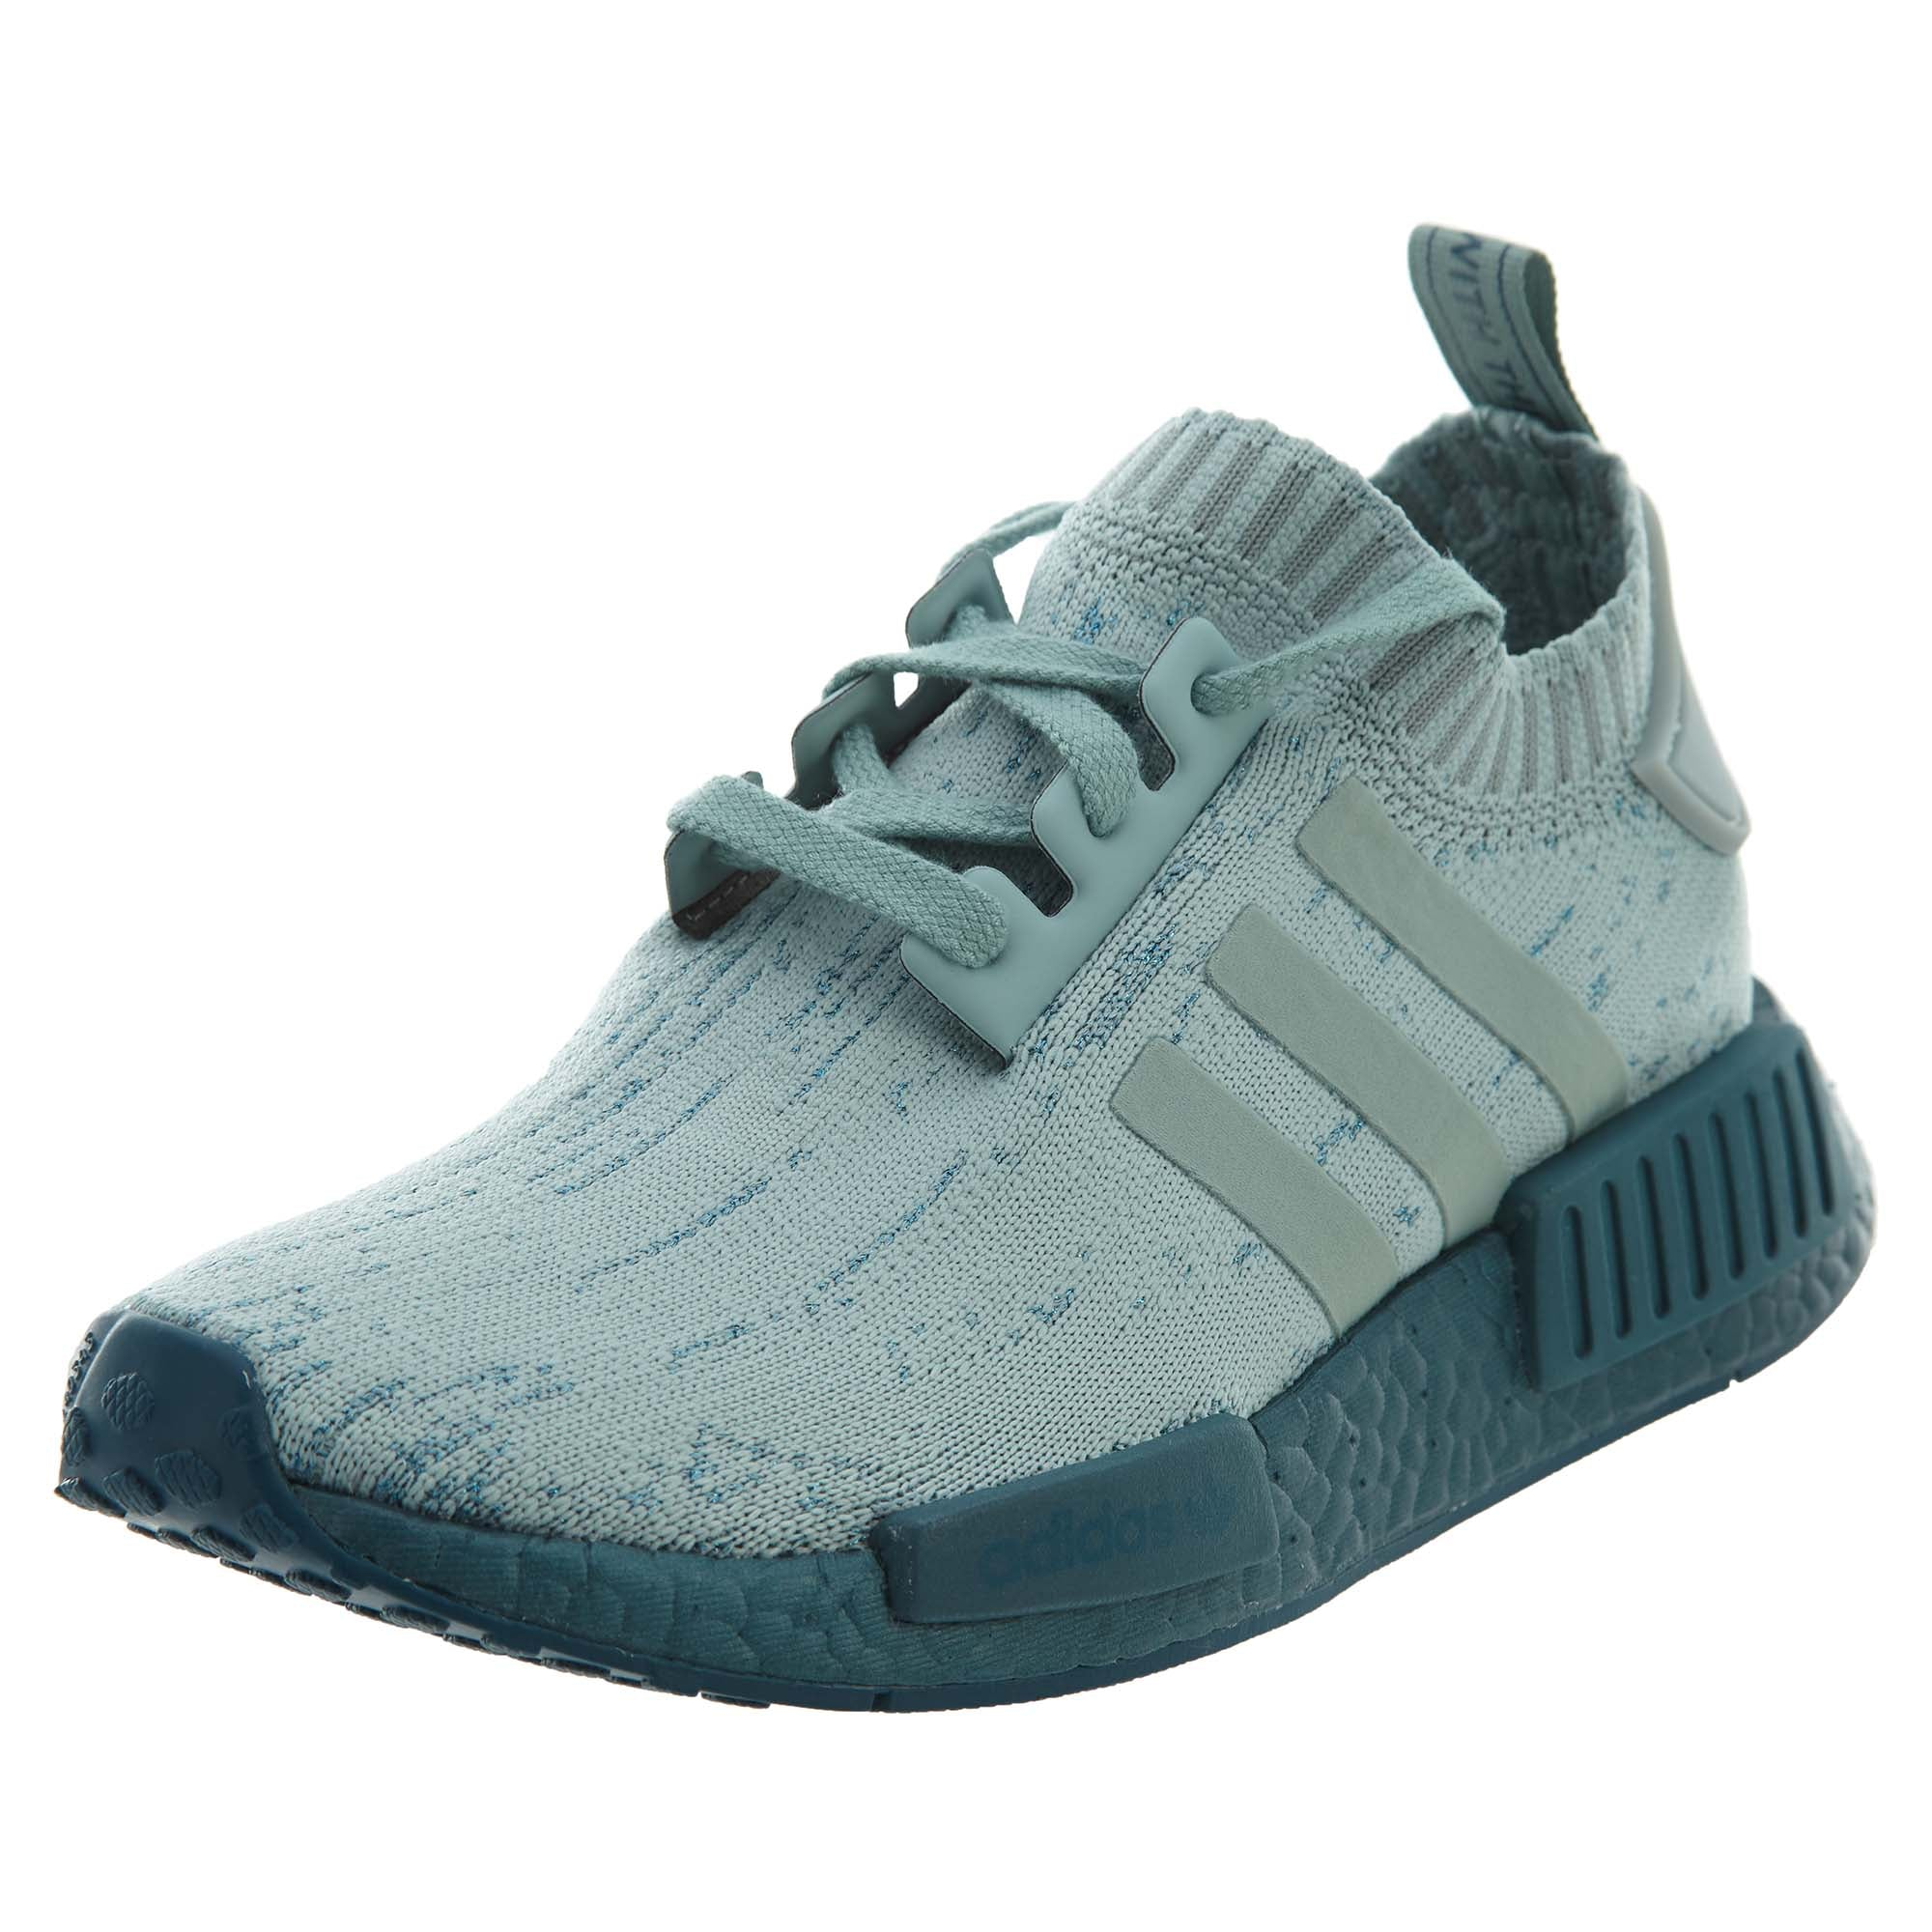 hot sale online 4119e 617f0 Adidas Nmd_R1 W Pk Womens Cg3601 – Sneaker Experts